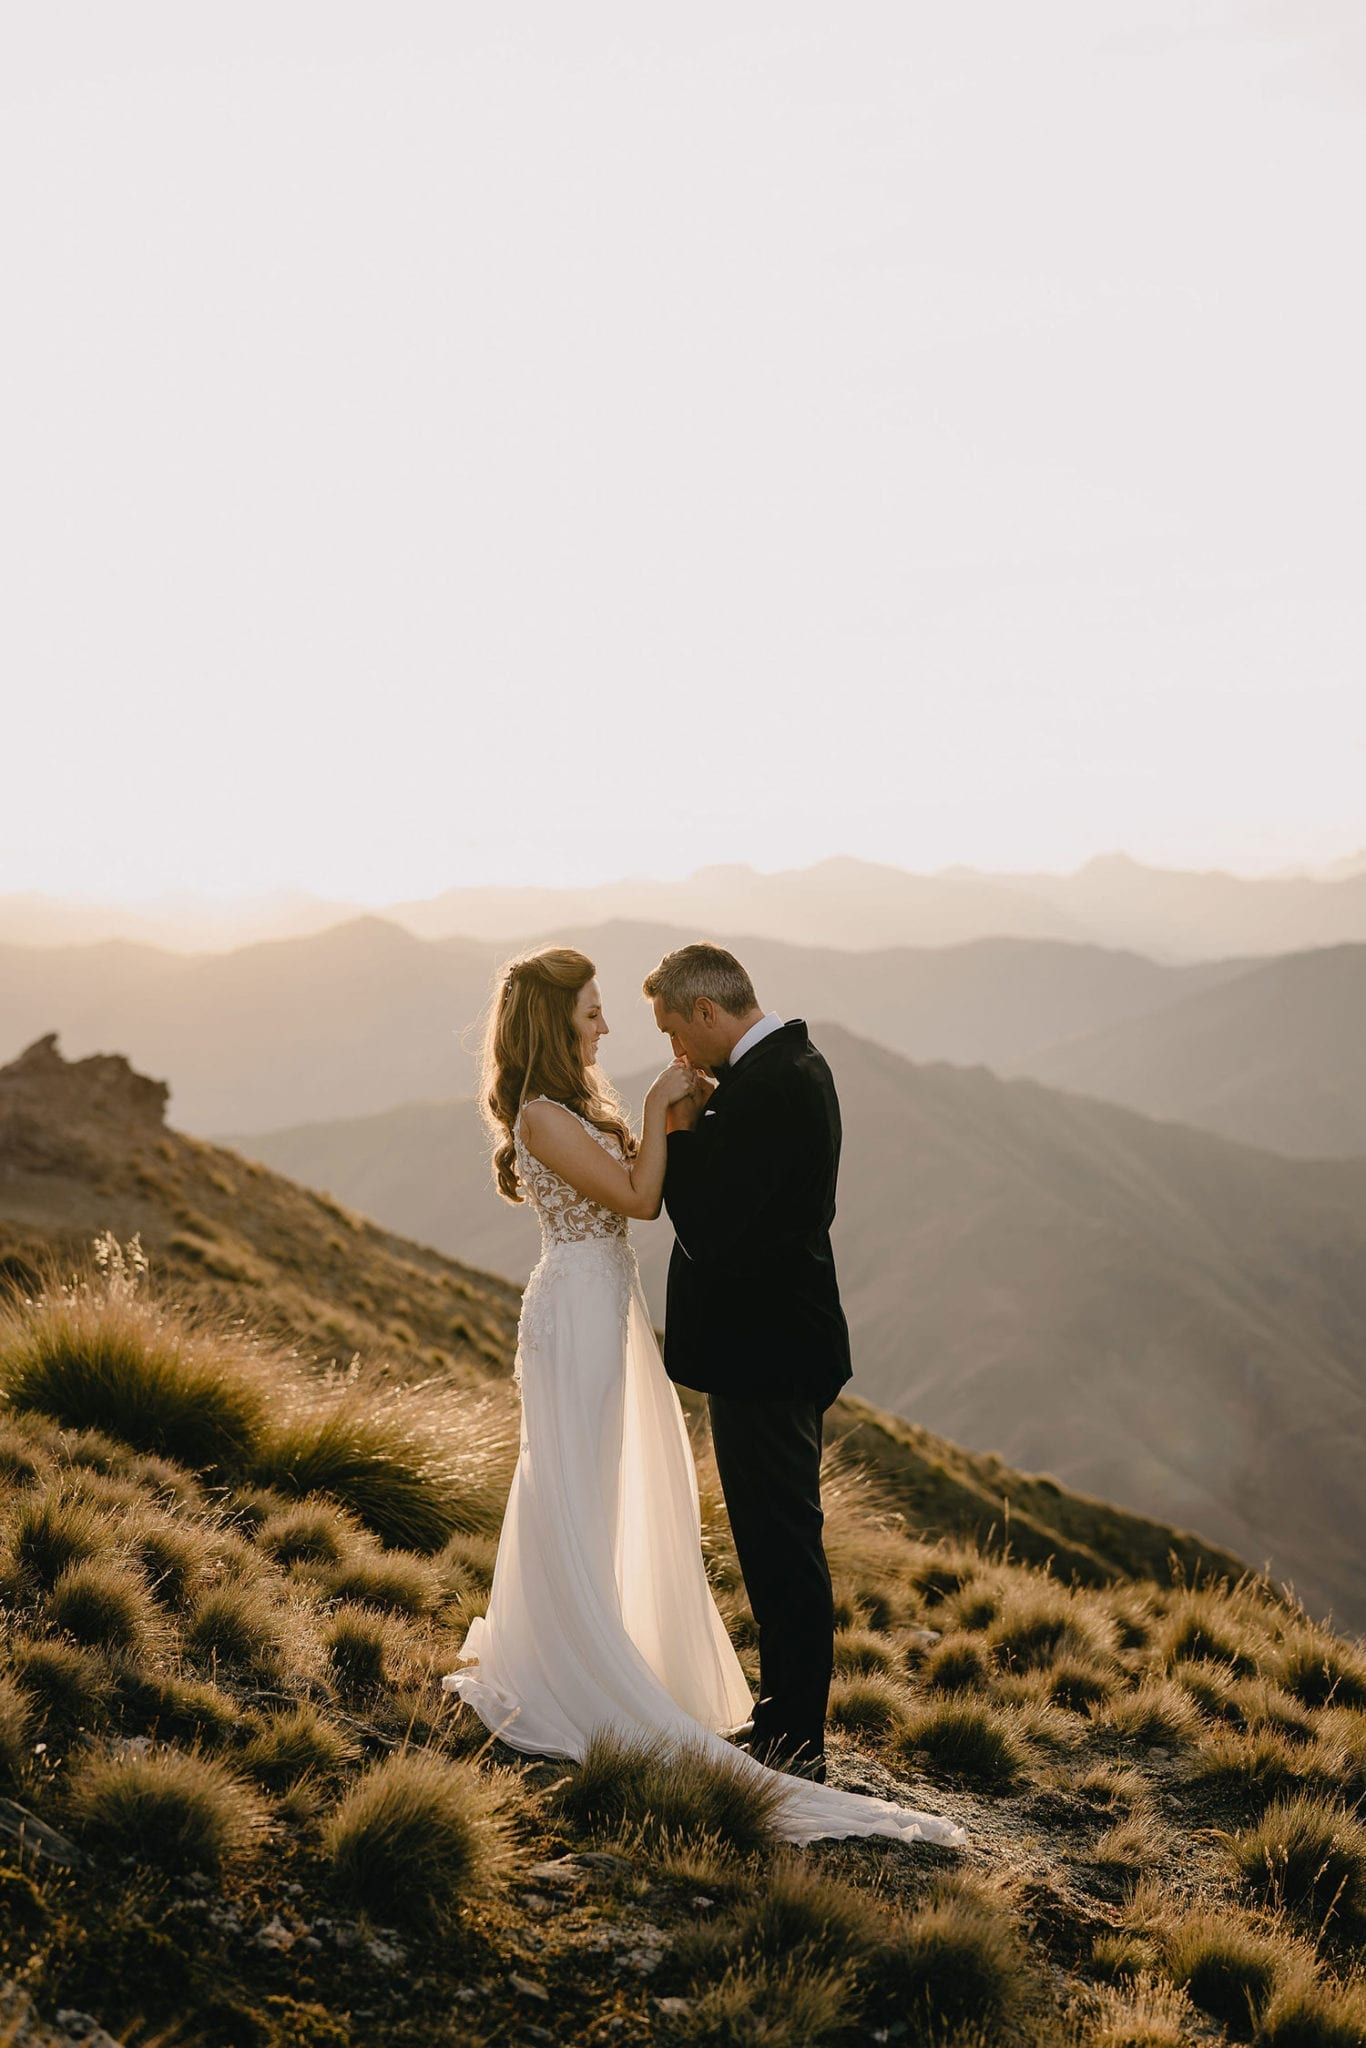 Vinka Design Features Real Weddings - bride in custom made gown, a beautiful intricate, sheer lace bodice, with a flowing, detachable, silk chiffon and tulle overskirt. The skirt had hand appliqued lace strategically placed throughout and trailing up from the train. Walking with groom embracing on mountain in NZ